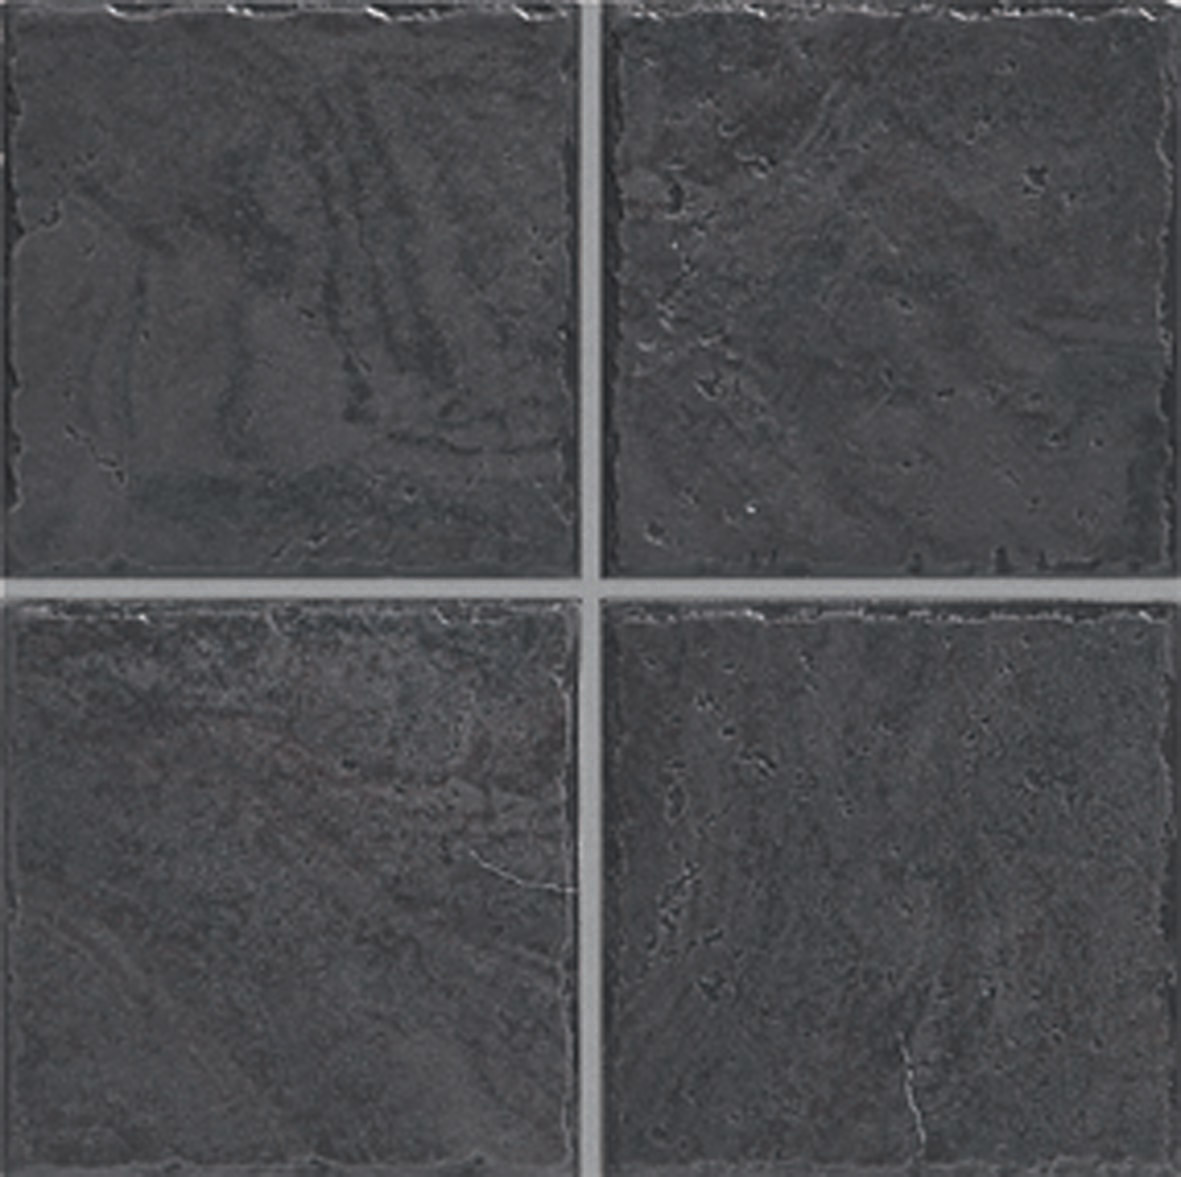 Anthracite glazed ceramic wall tile with slight textured finish anthracite glazed ceramic wall tile with slight textured finish perfect for creating a rustic finish within your home dailygadgetfo Choice Image